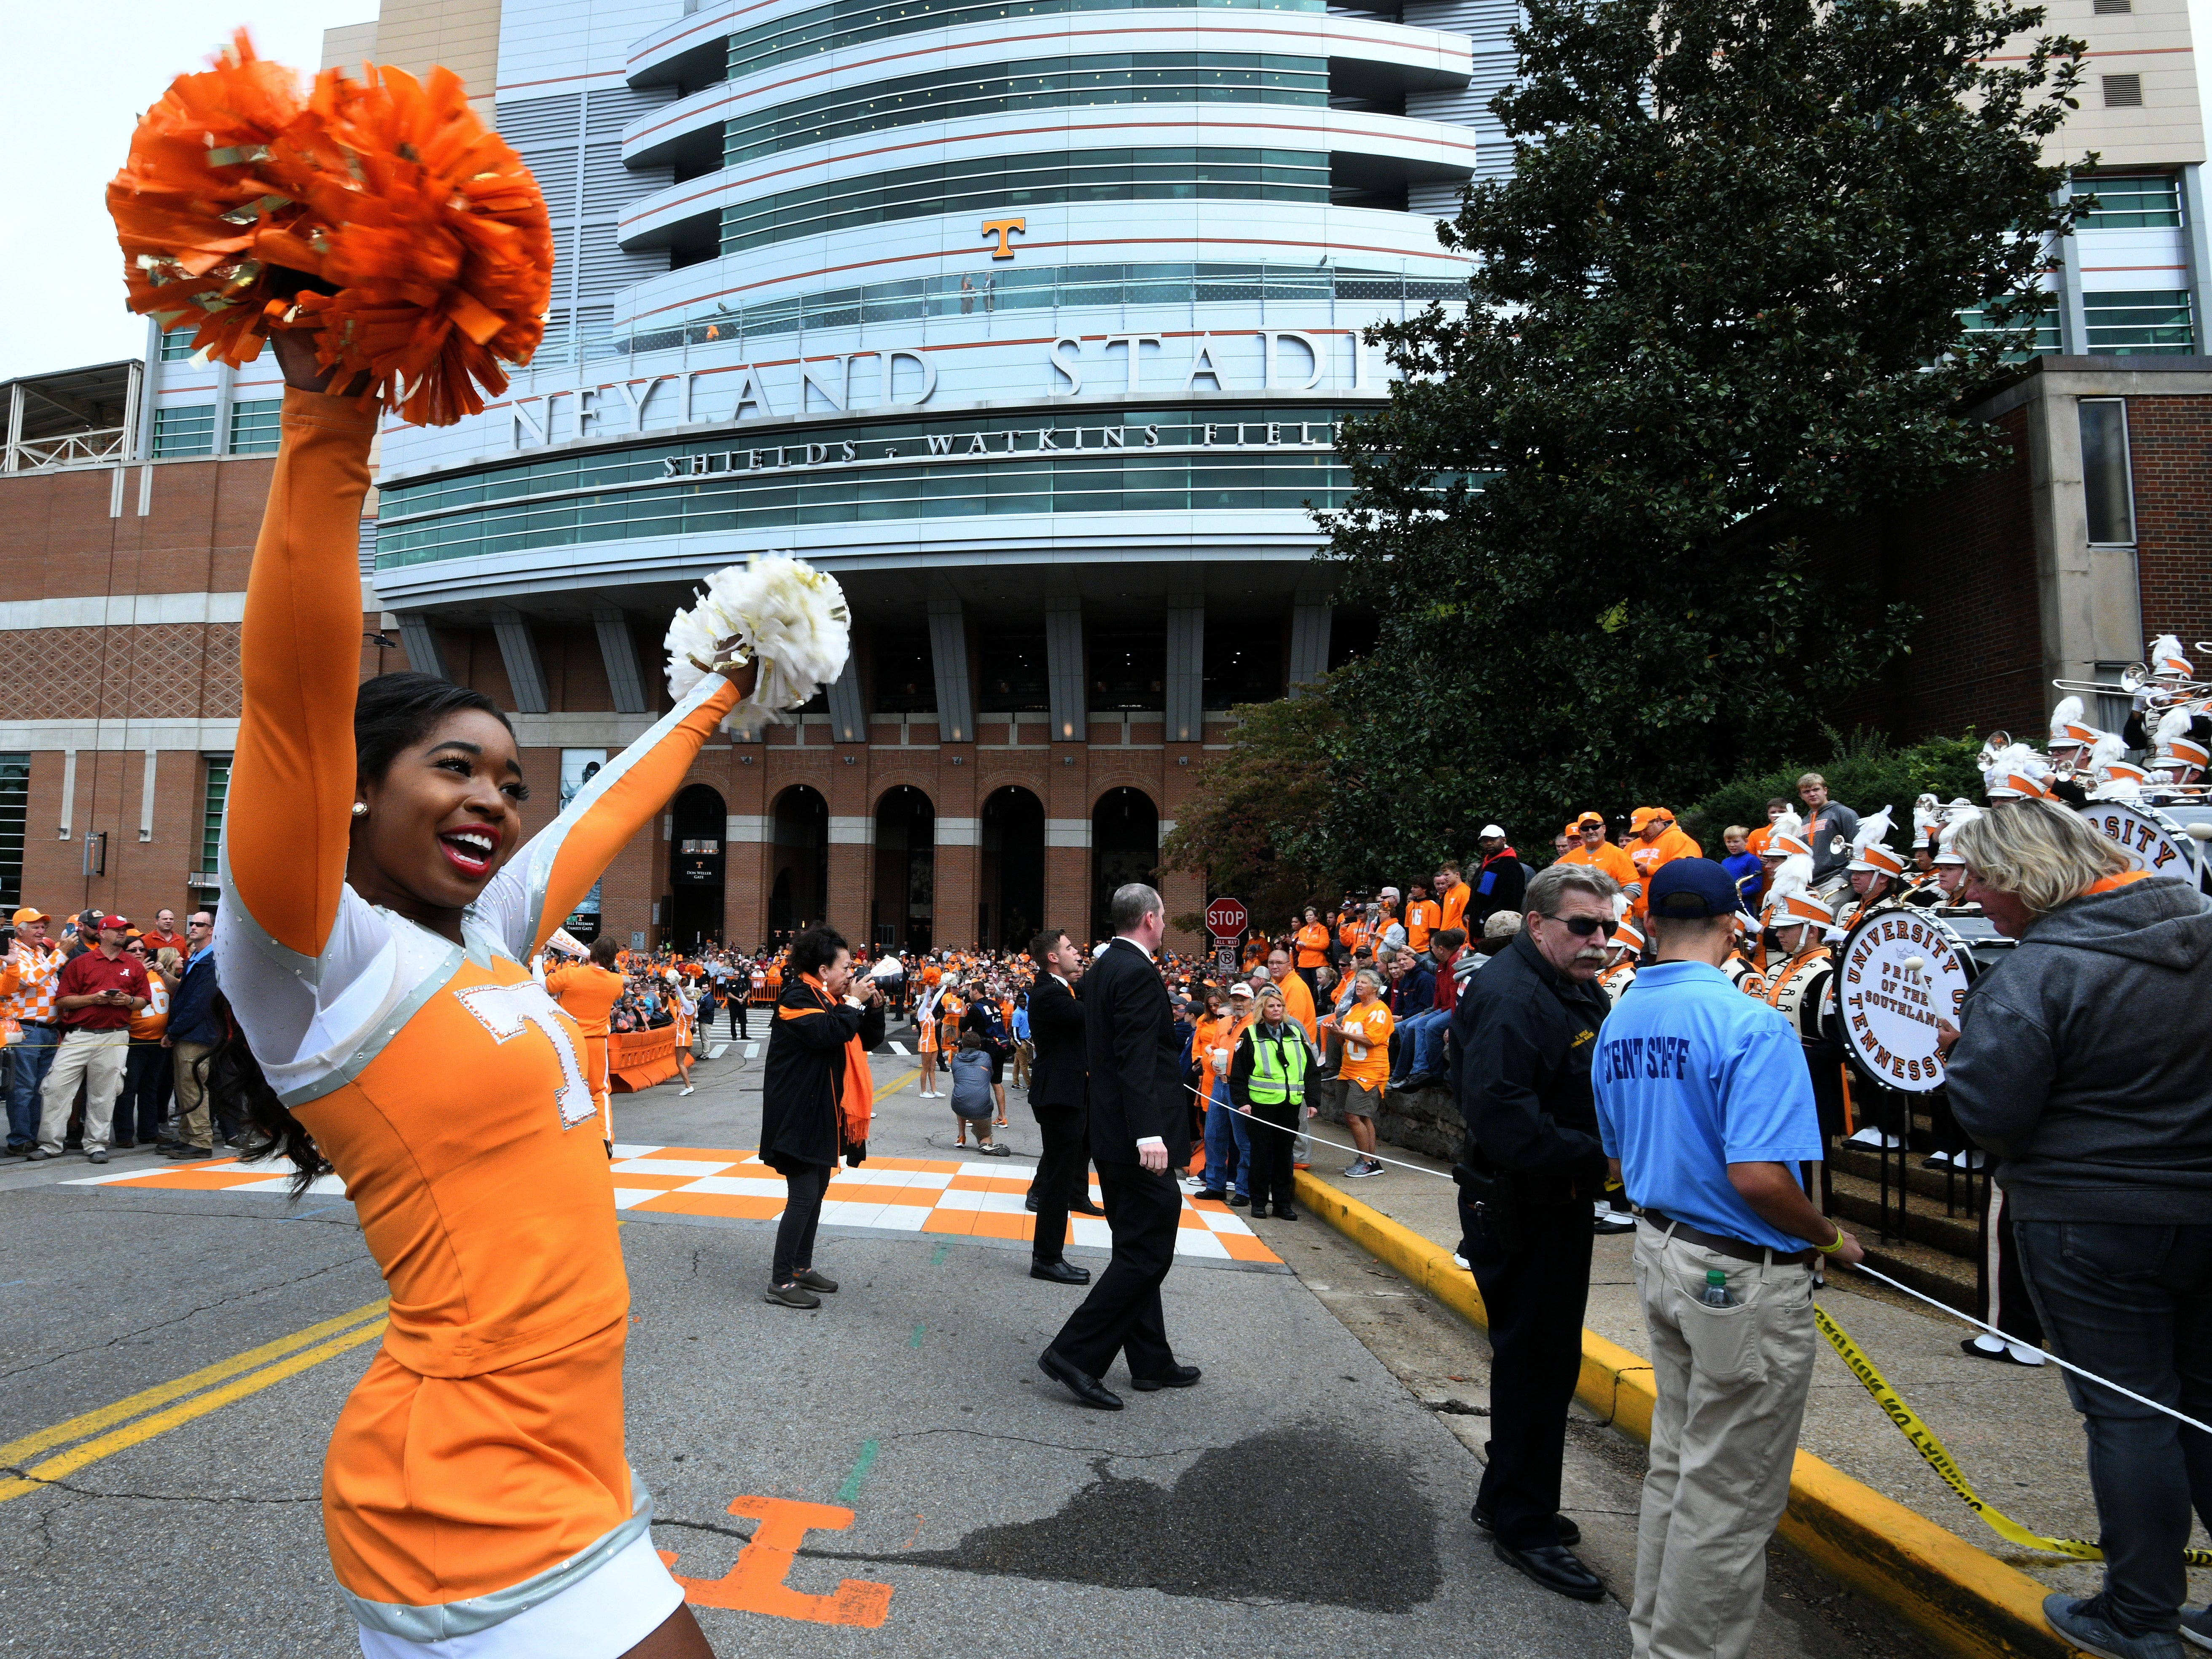 Tennessee cheerleader preparing fans for the Vol Walk  before the Alabama game Saturday, October 20, 2018 at Neyland Stadium in Knoxville, Tenn.